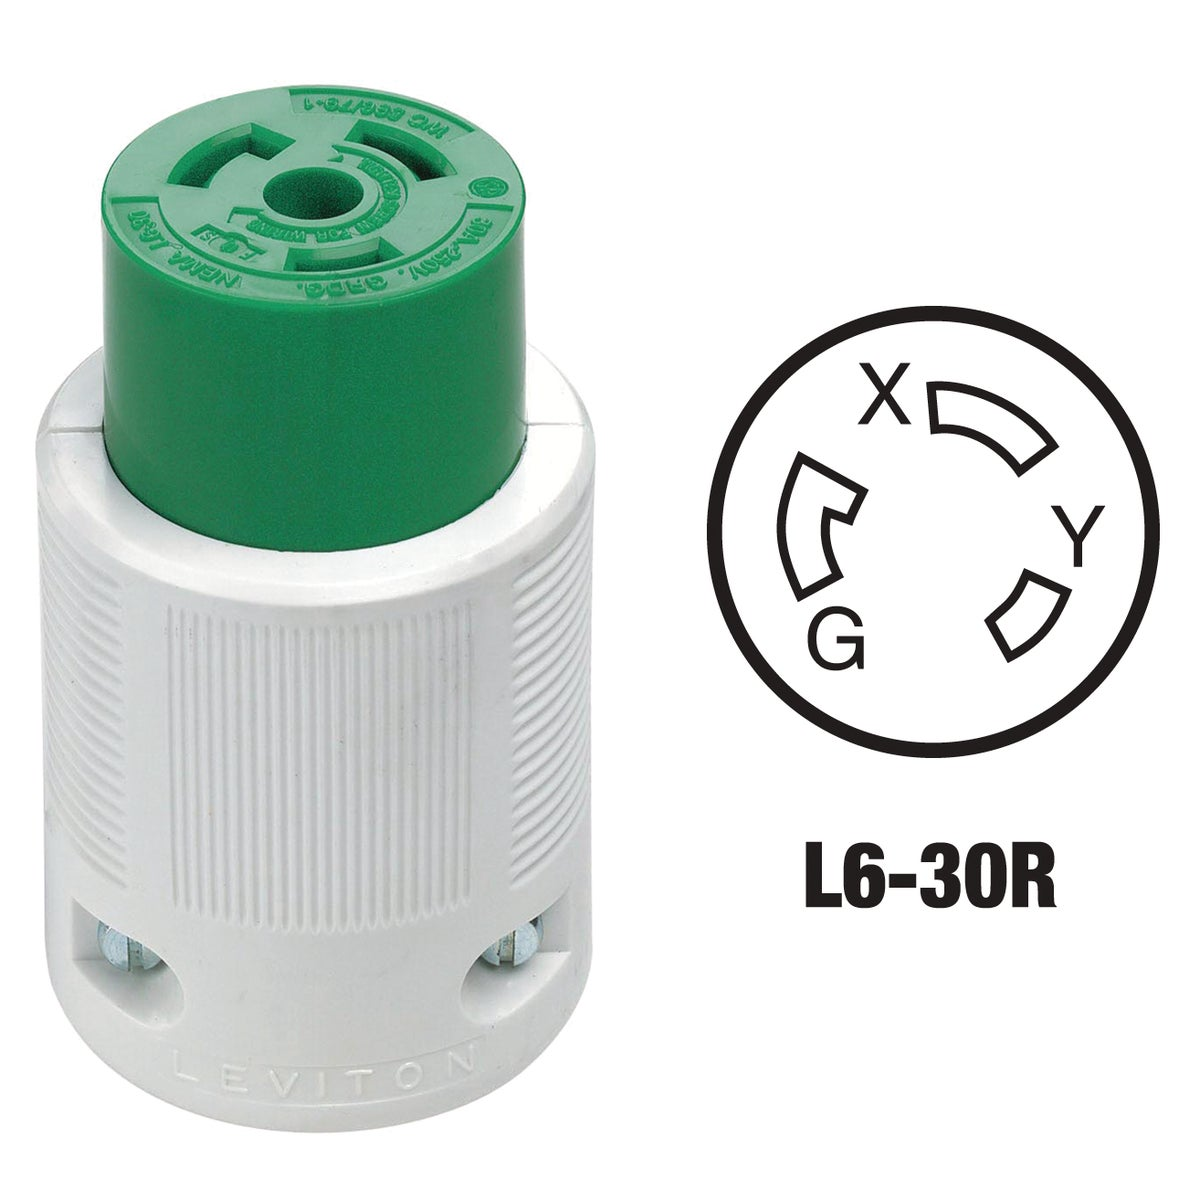 30A LOCKG CORD CONNECTOR - 021-70630LC by Leviton Mfg Co